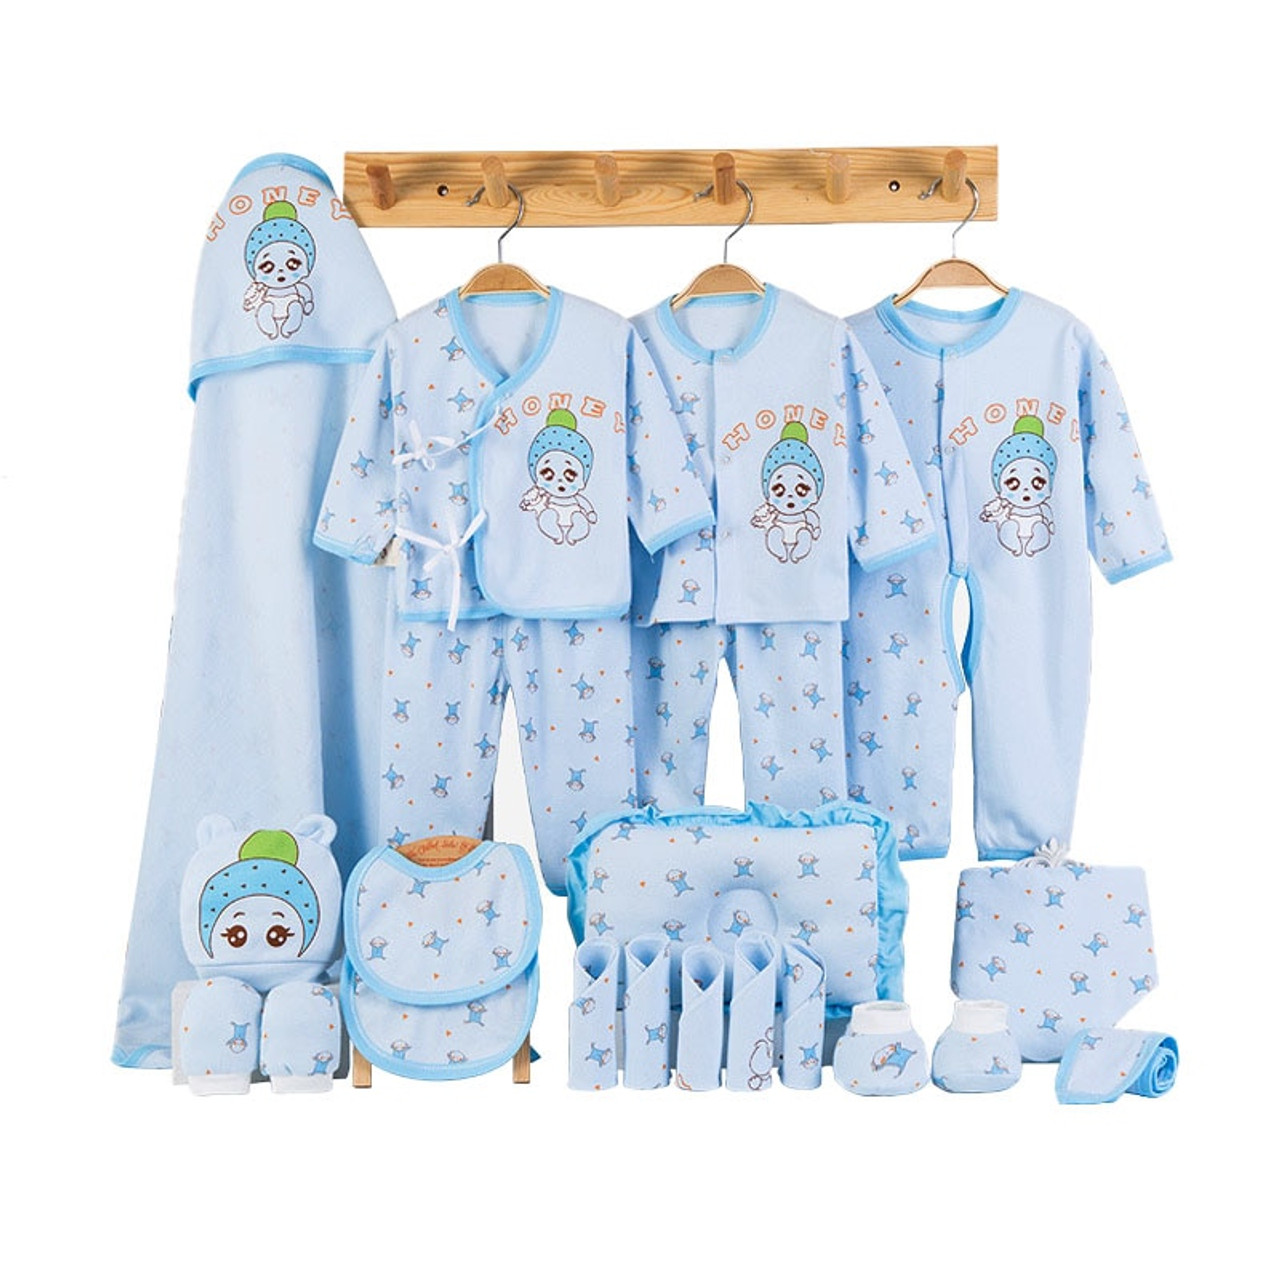 a32a54bc28d ... Newborn Baby Clothes Soft Cotton Toddler Baby Boy Girl Clothes Set  Cartoon Infant Clothing New Born ...